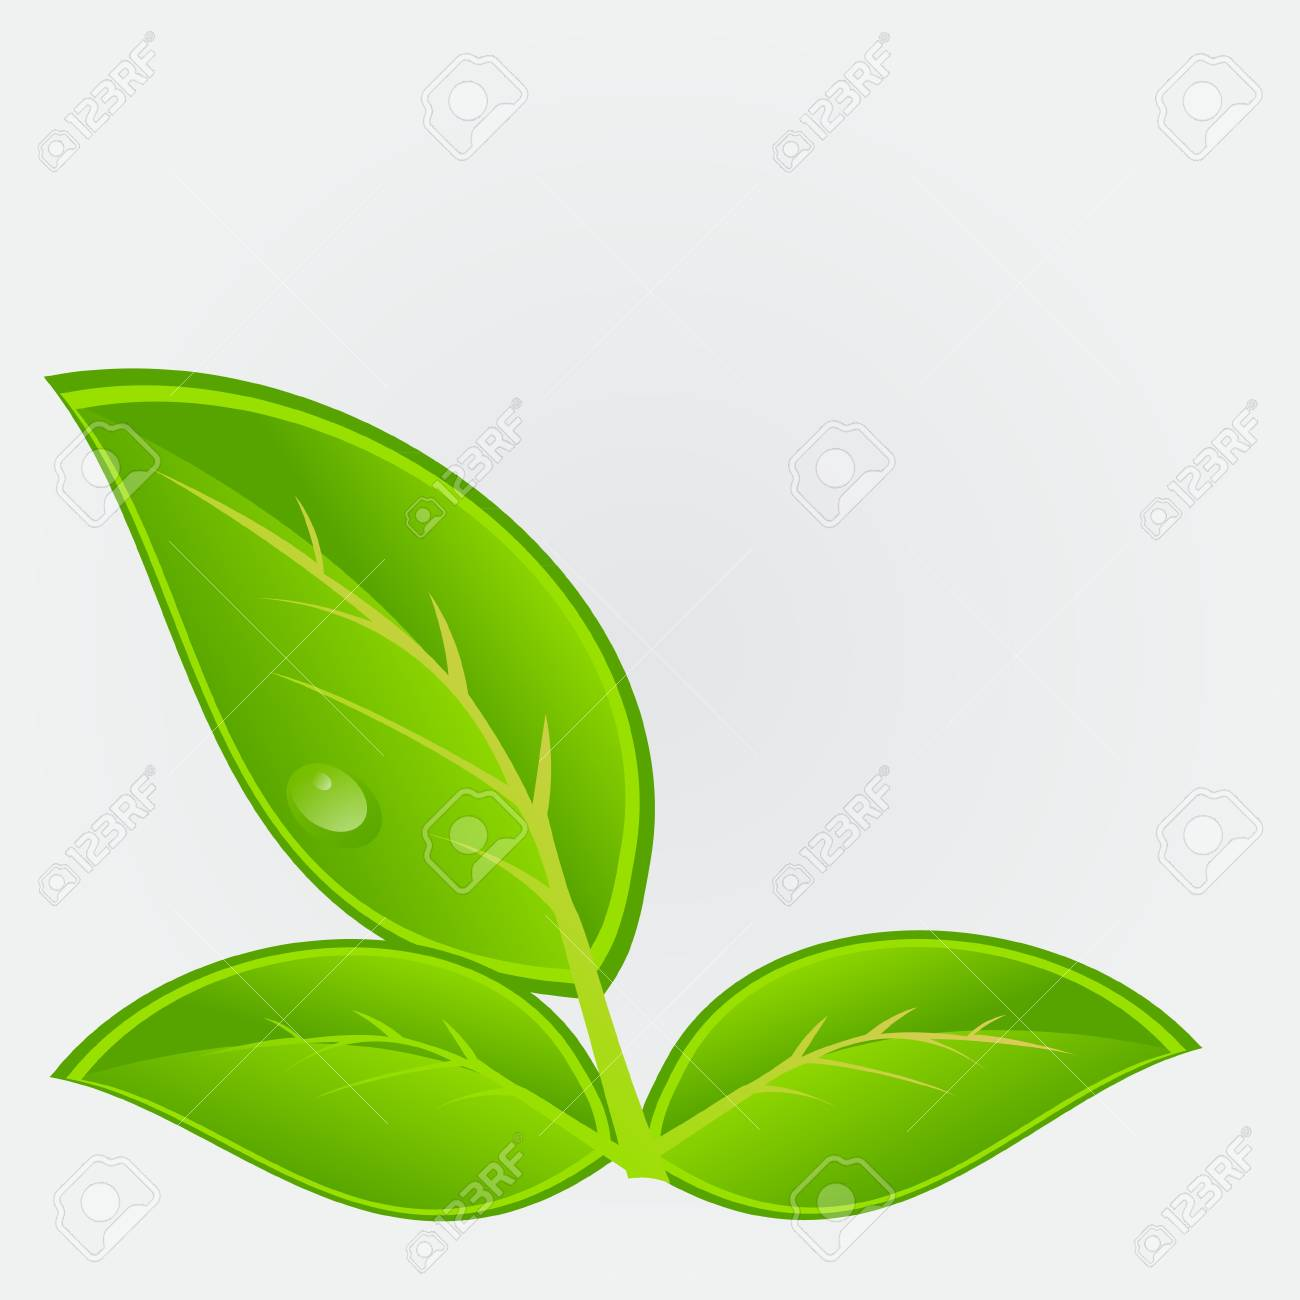 Environmental icon with plant  Vector illustration Stock Vector - 12709913